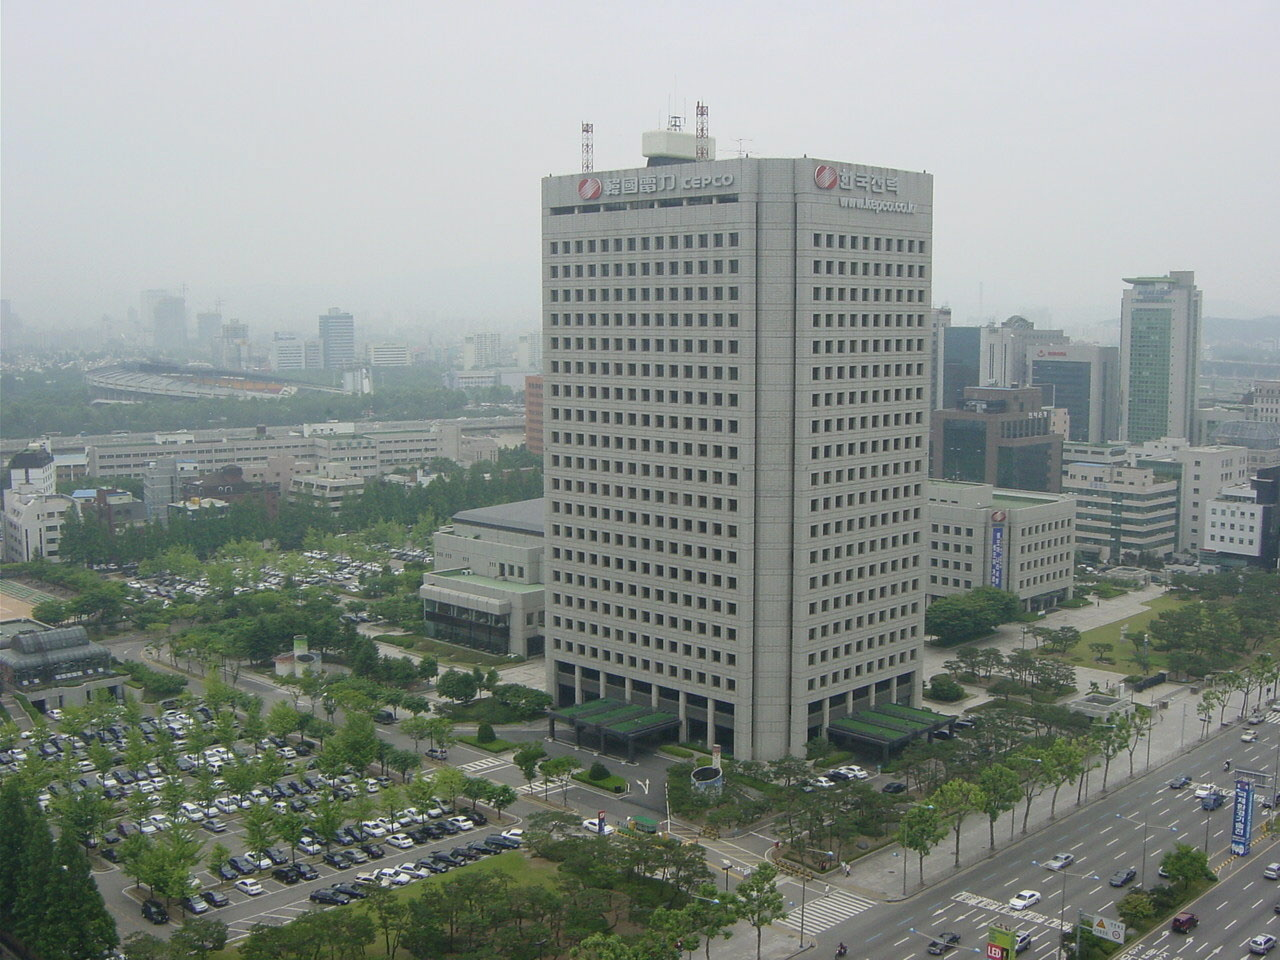 The Korea Electric Power Corporation headquarters building in Gangnam, Seoul. It is located within walking distance of Samseong Subway Station.